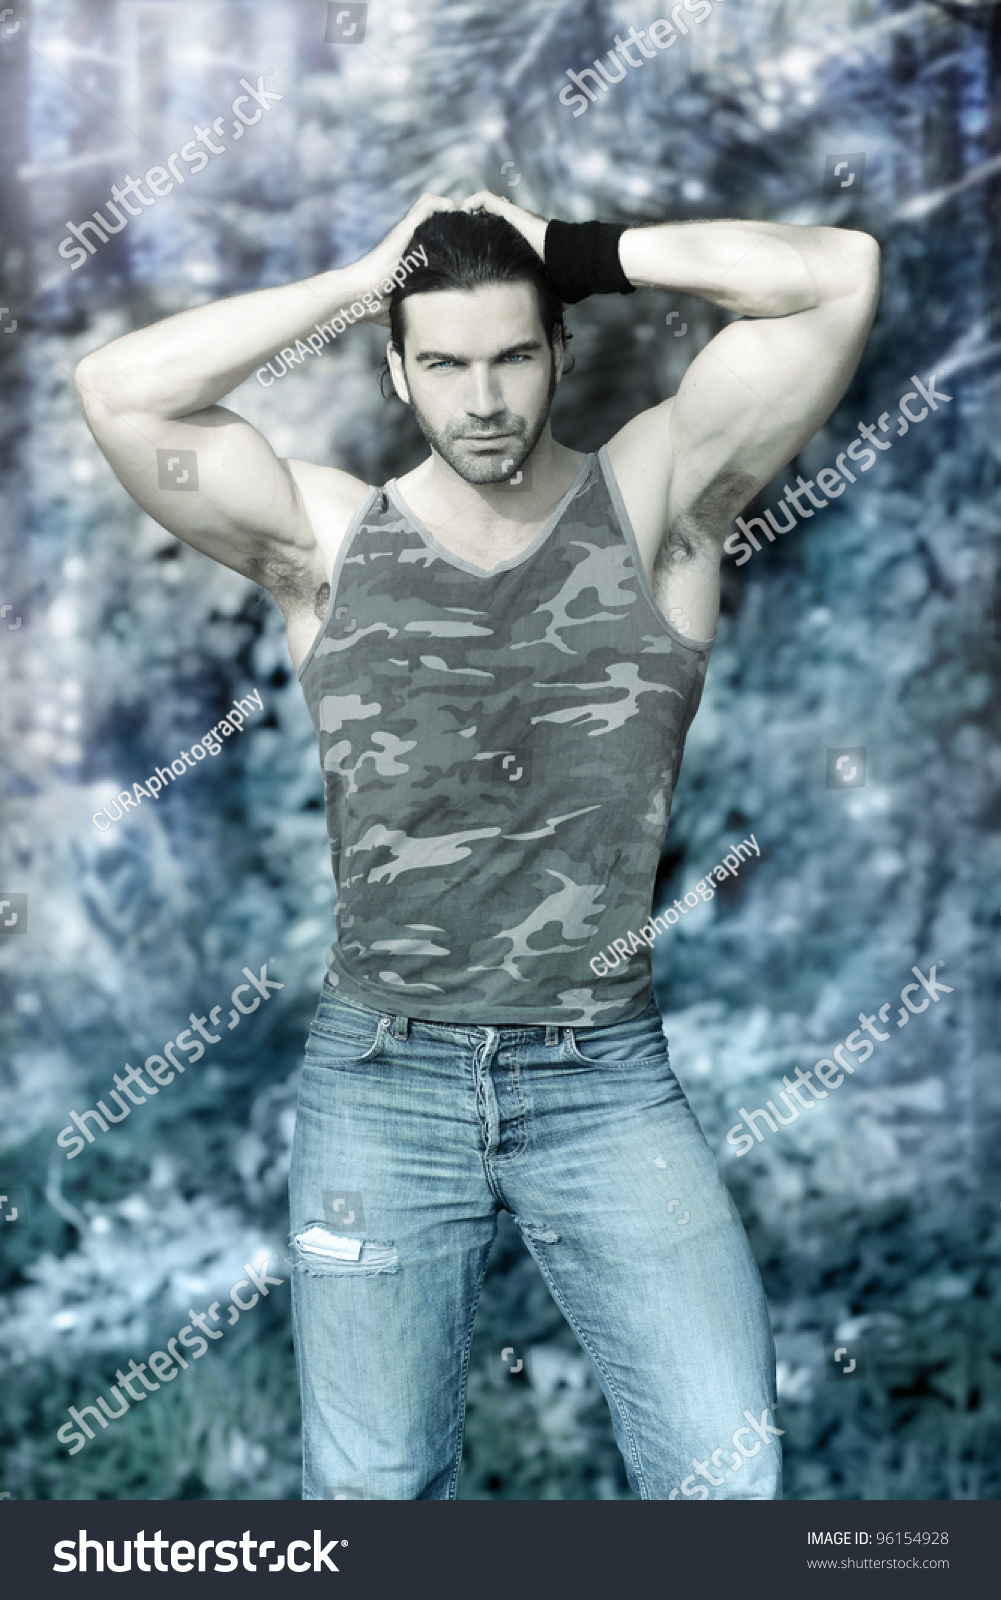 Stylized Outdoor Portrait Of Muscular Man Posing In Tank Top And Jeans Against Winter Wonderland Background